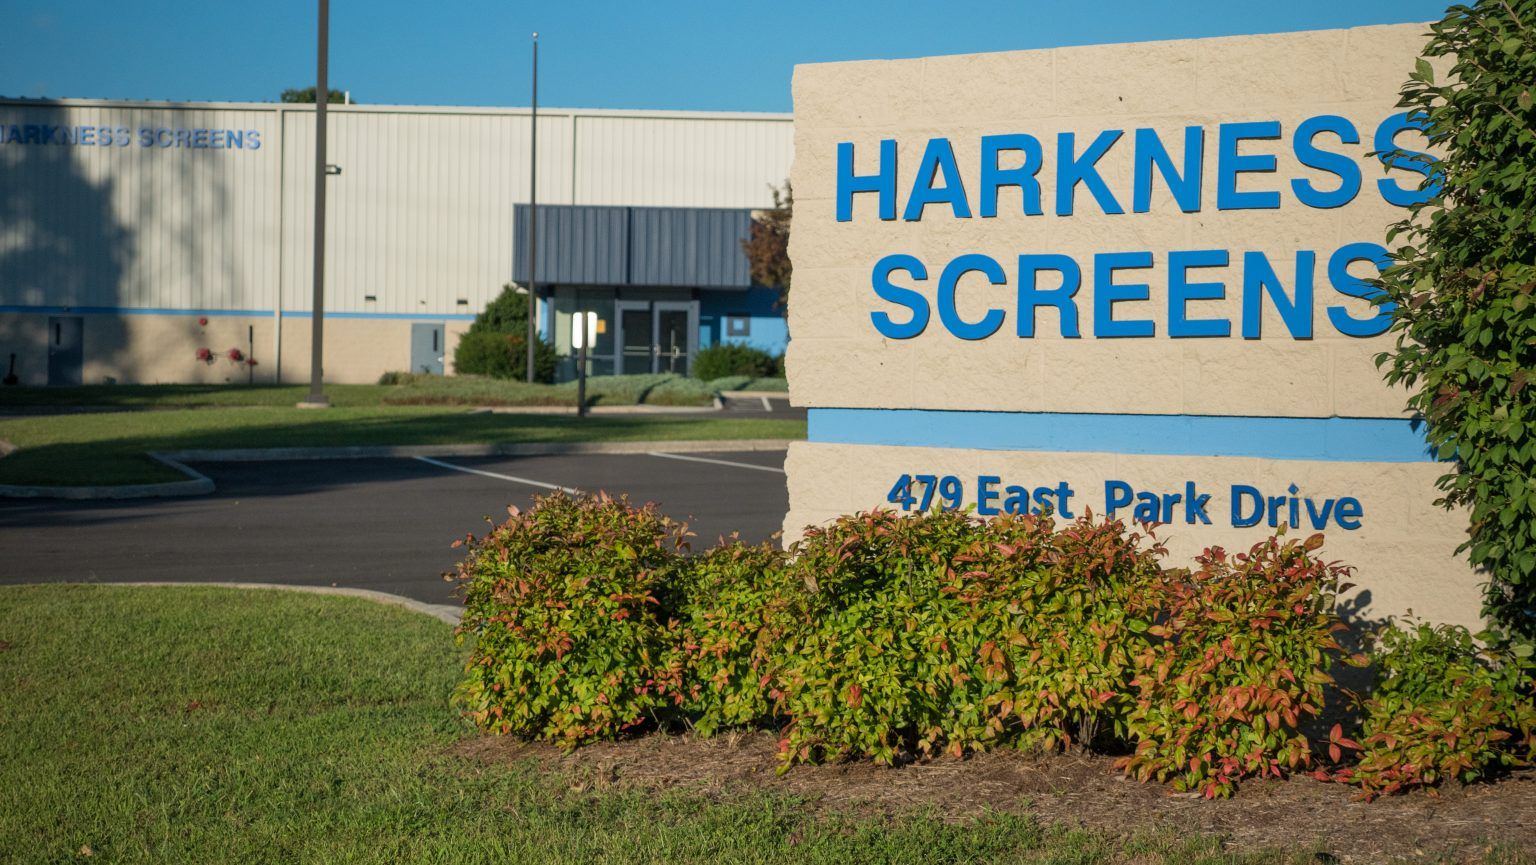 Harkness roanoke facility proud to provide made in the